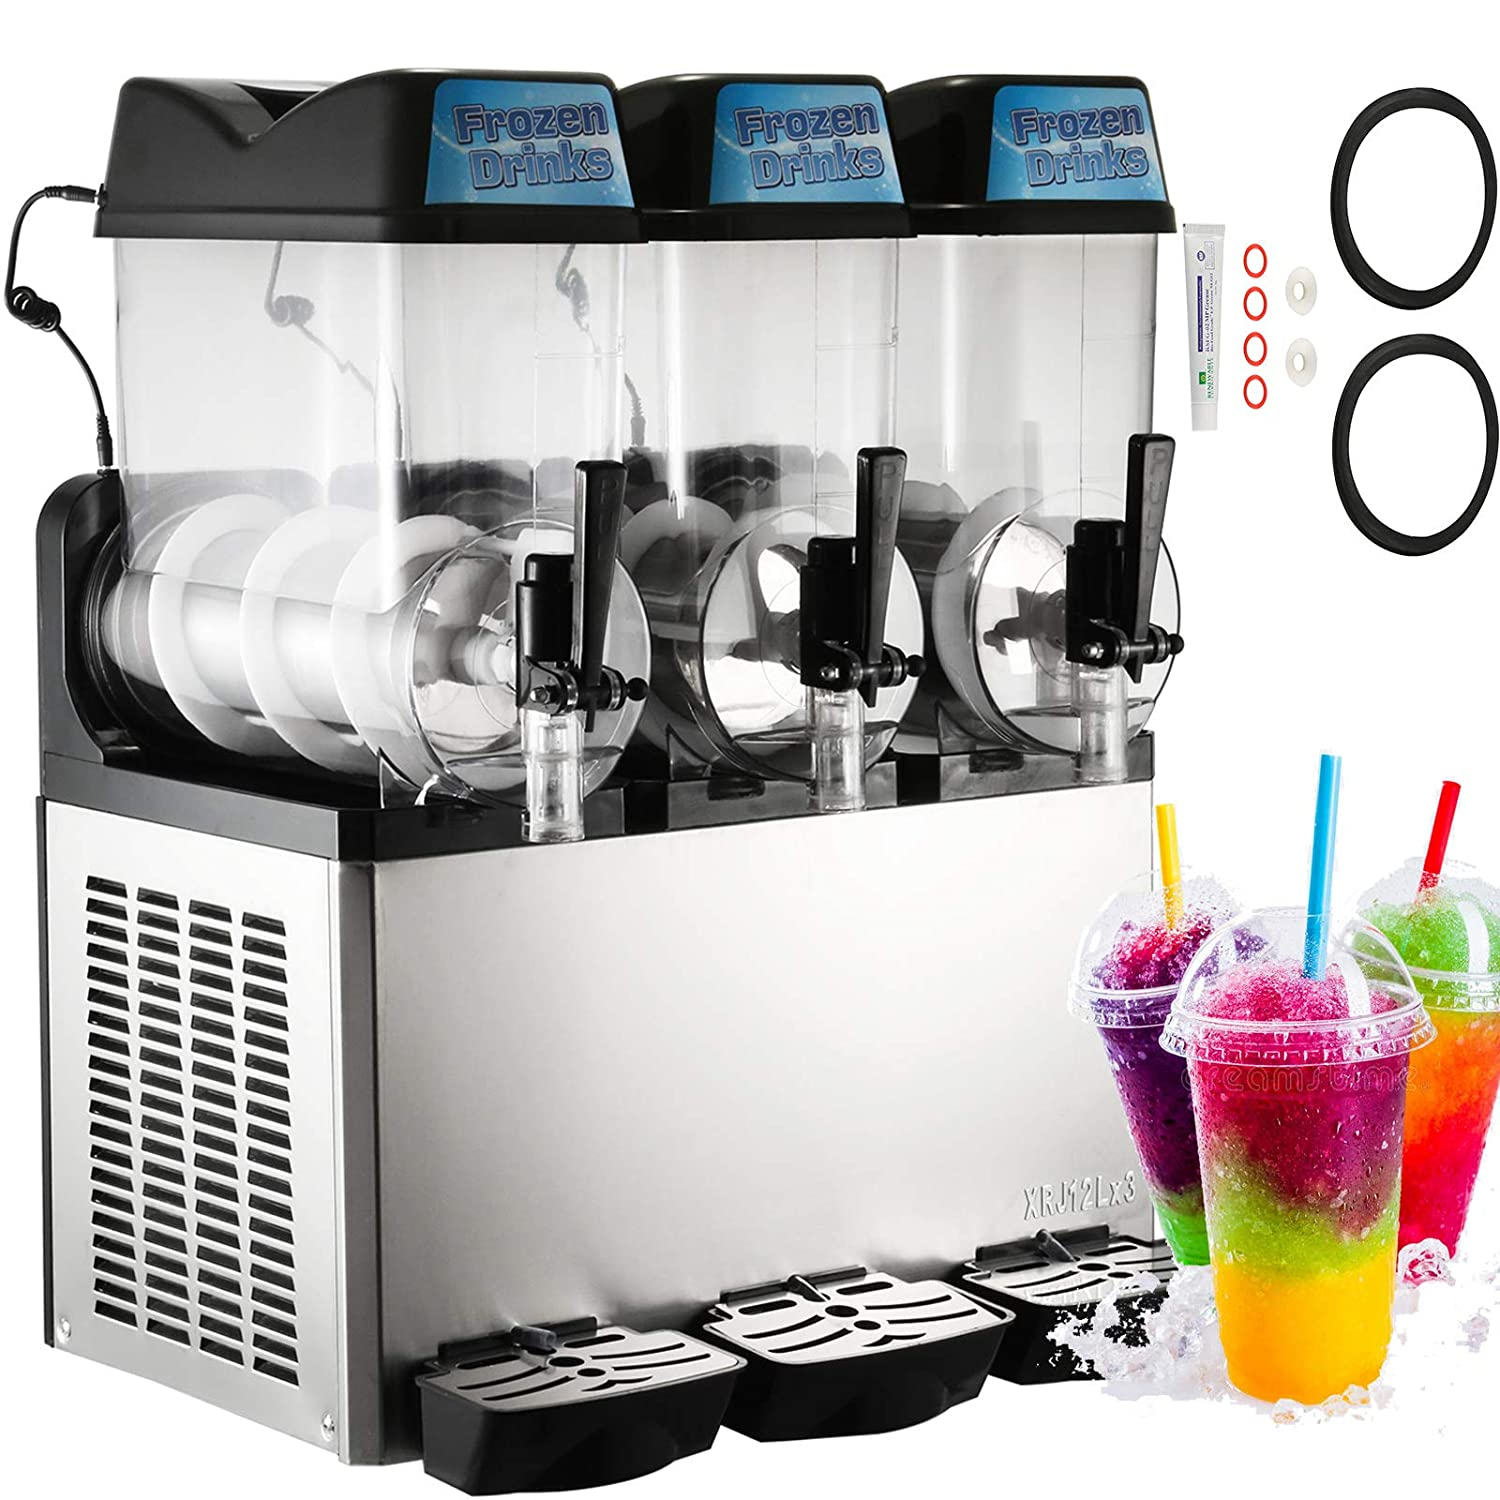 Happybuy 110V Commercial Slushy Machine 600W Stainless Steel Margarita Smoothie Frozen Drink Maker Suitable Perfect for Ice Juice Tea Coffee Making 12L x 3 Tank Sliver